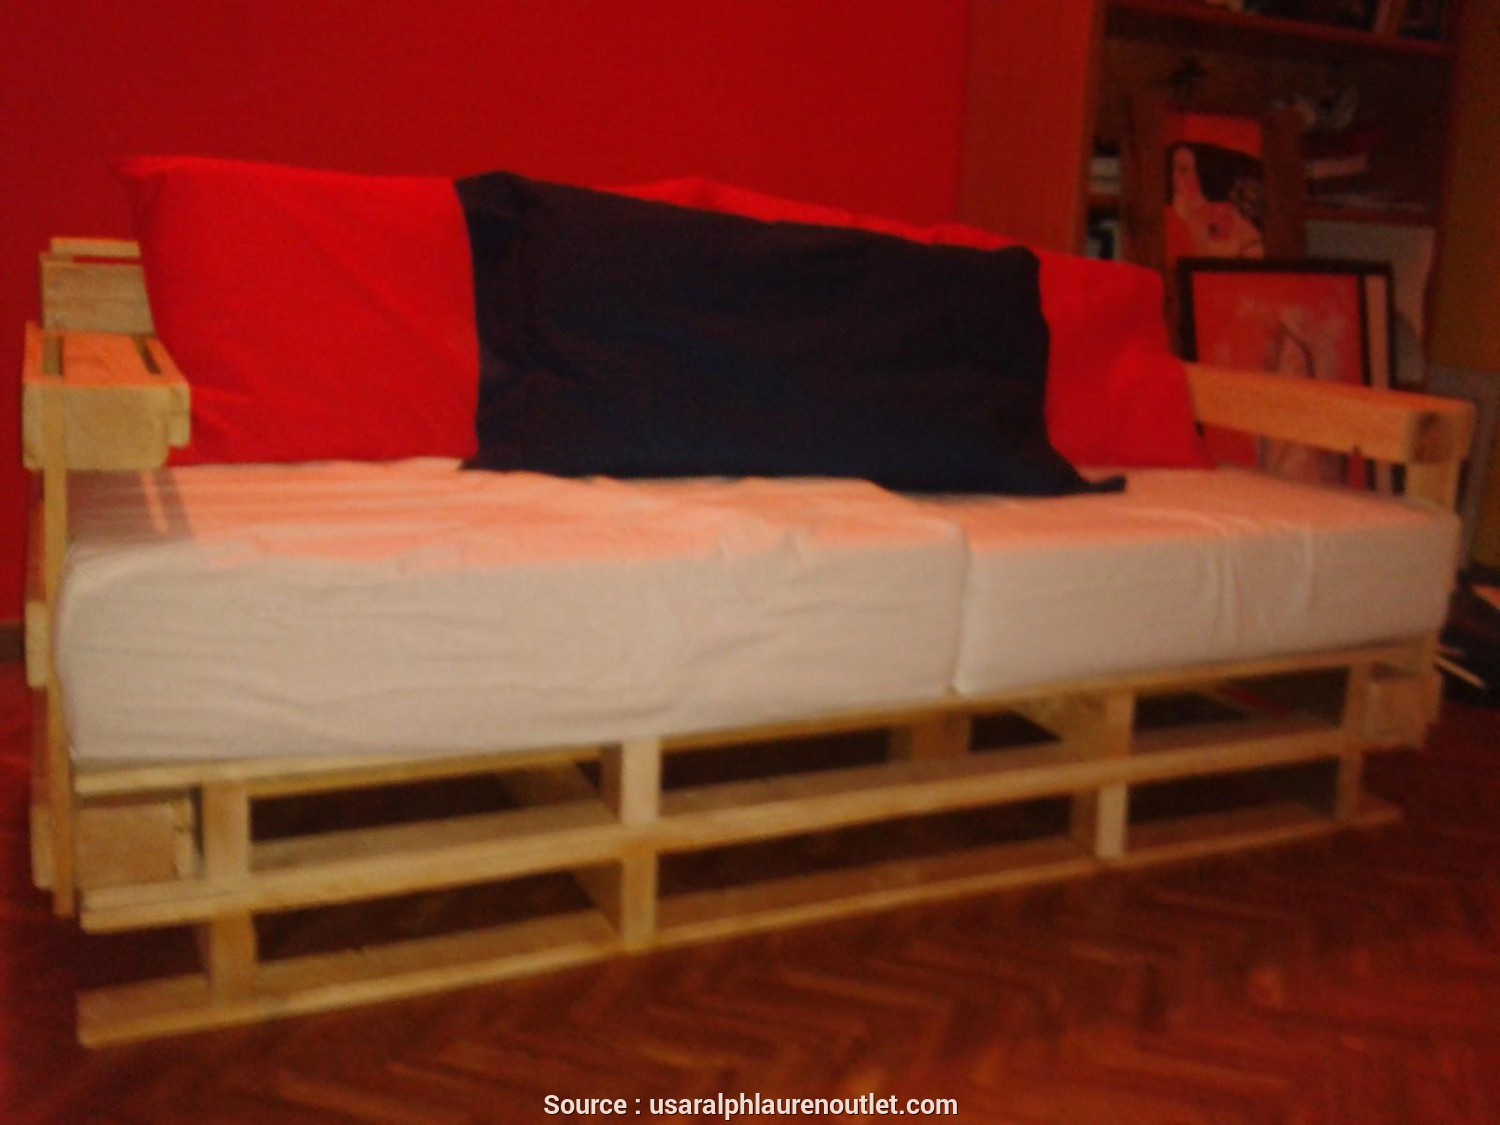 Loveable 4 Come Costruire Un Divanetto, I Pallet